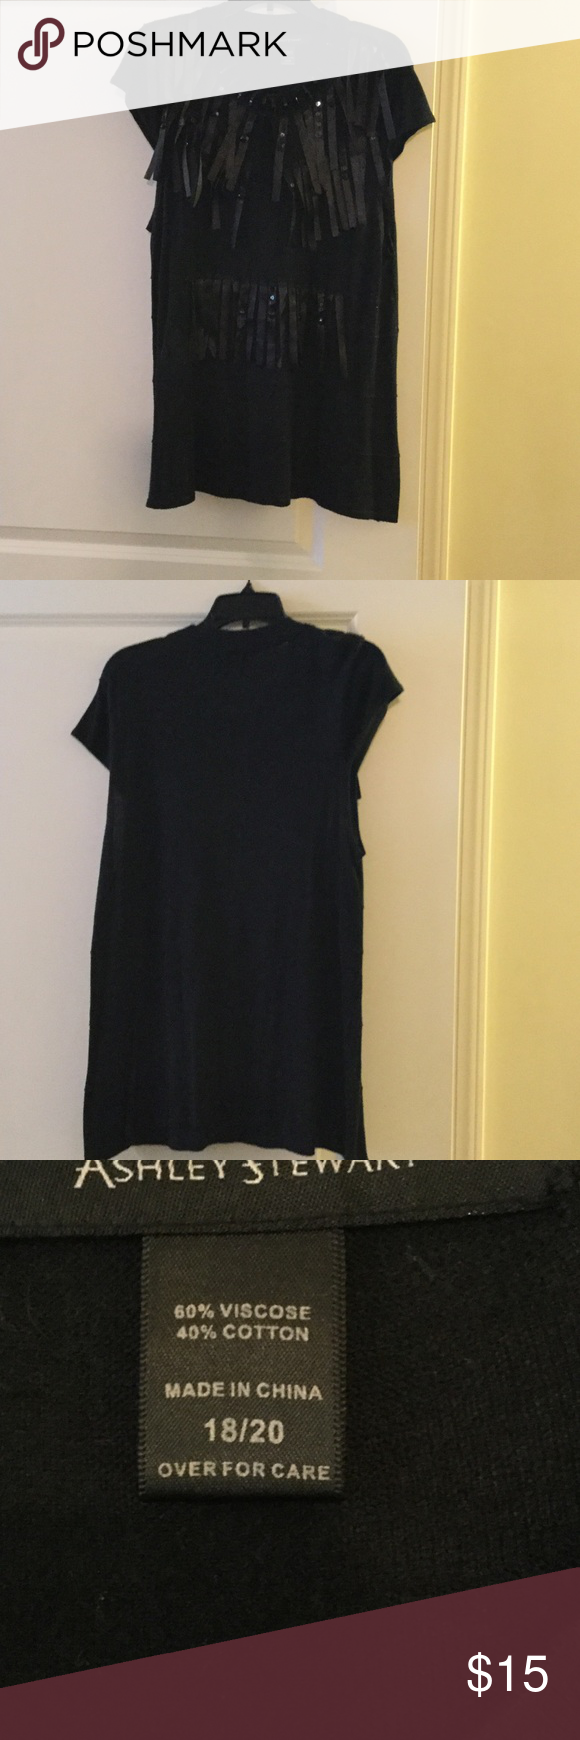 Great Top Great to go out in. Dress up those jeans ! Ashley Stewart Tops Blouses